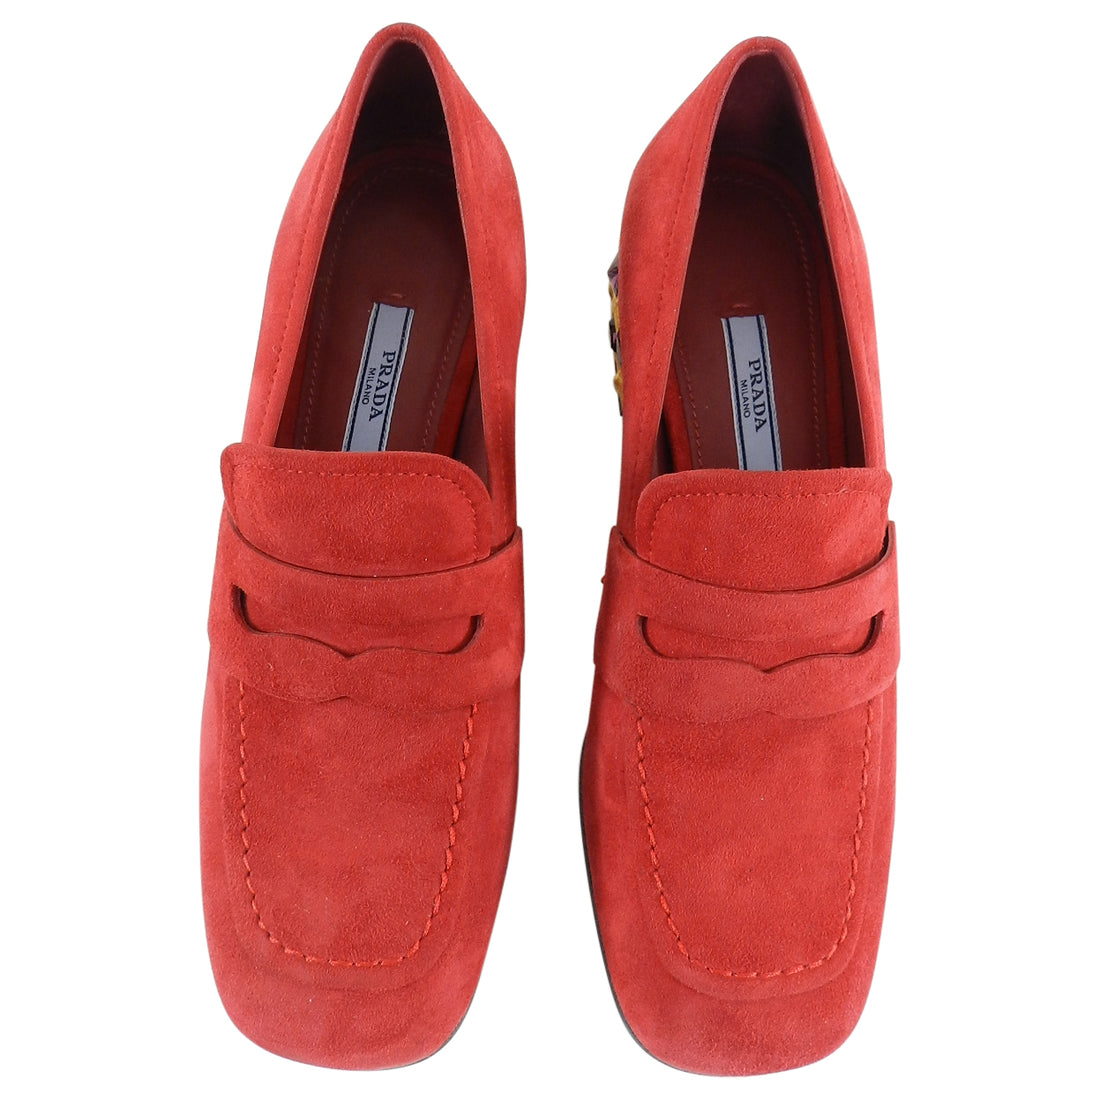 Prada Red Suede Loafer with Gold Metal Jewel Heels - 37.5